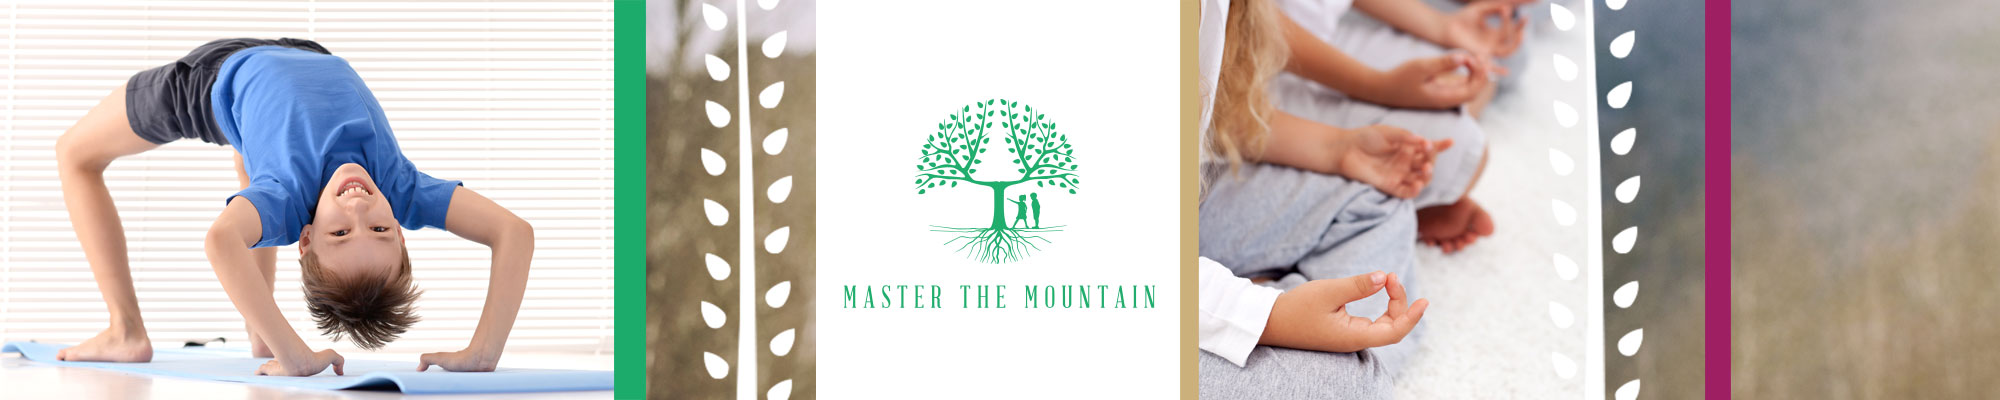 Free yoga and mindfulness resources - logo banner